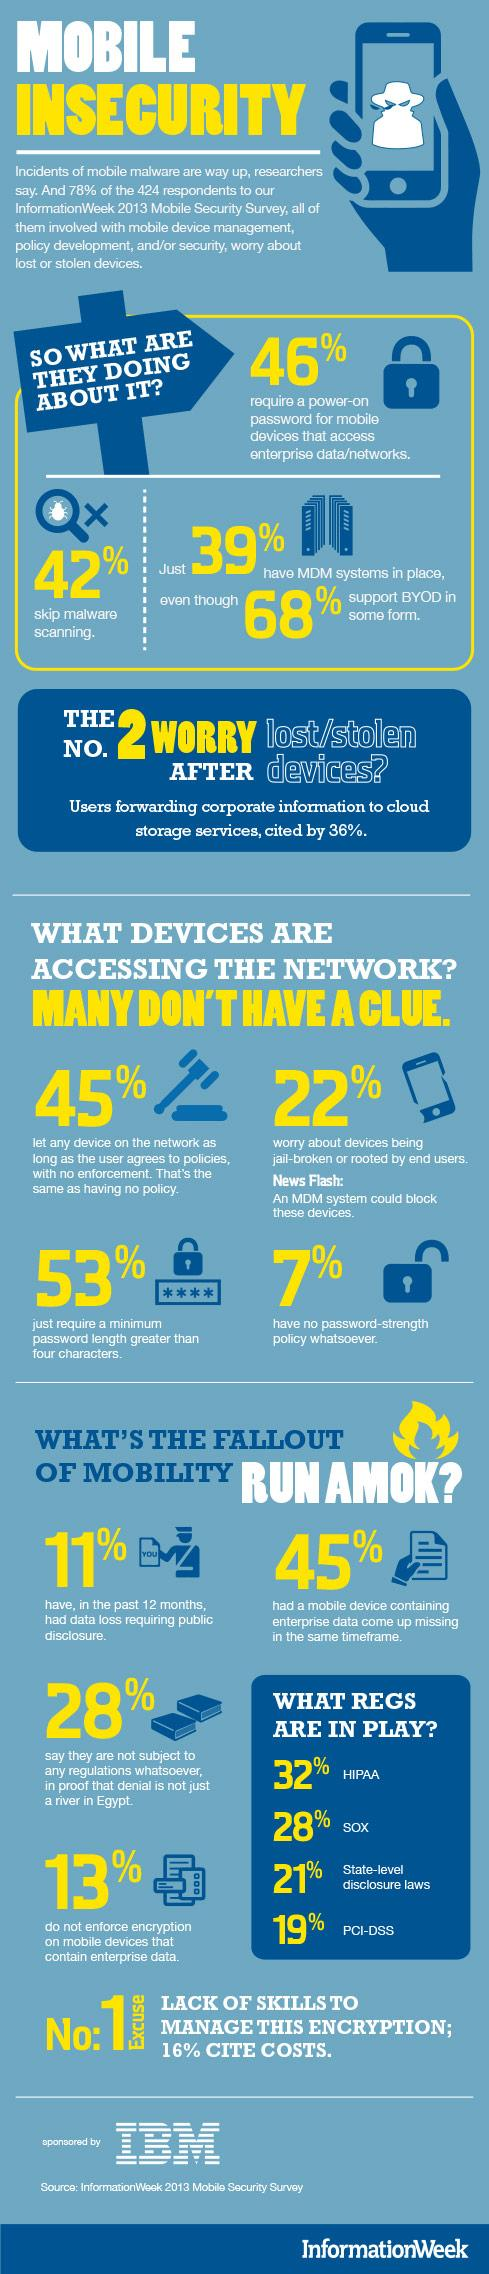 mobile-insecurity-infographic